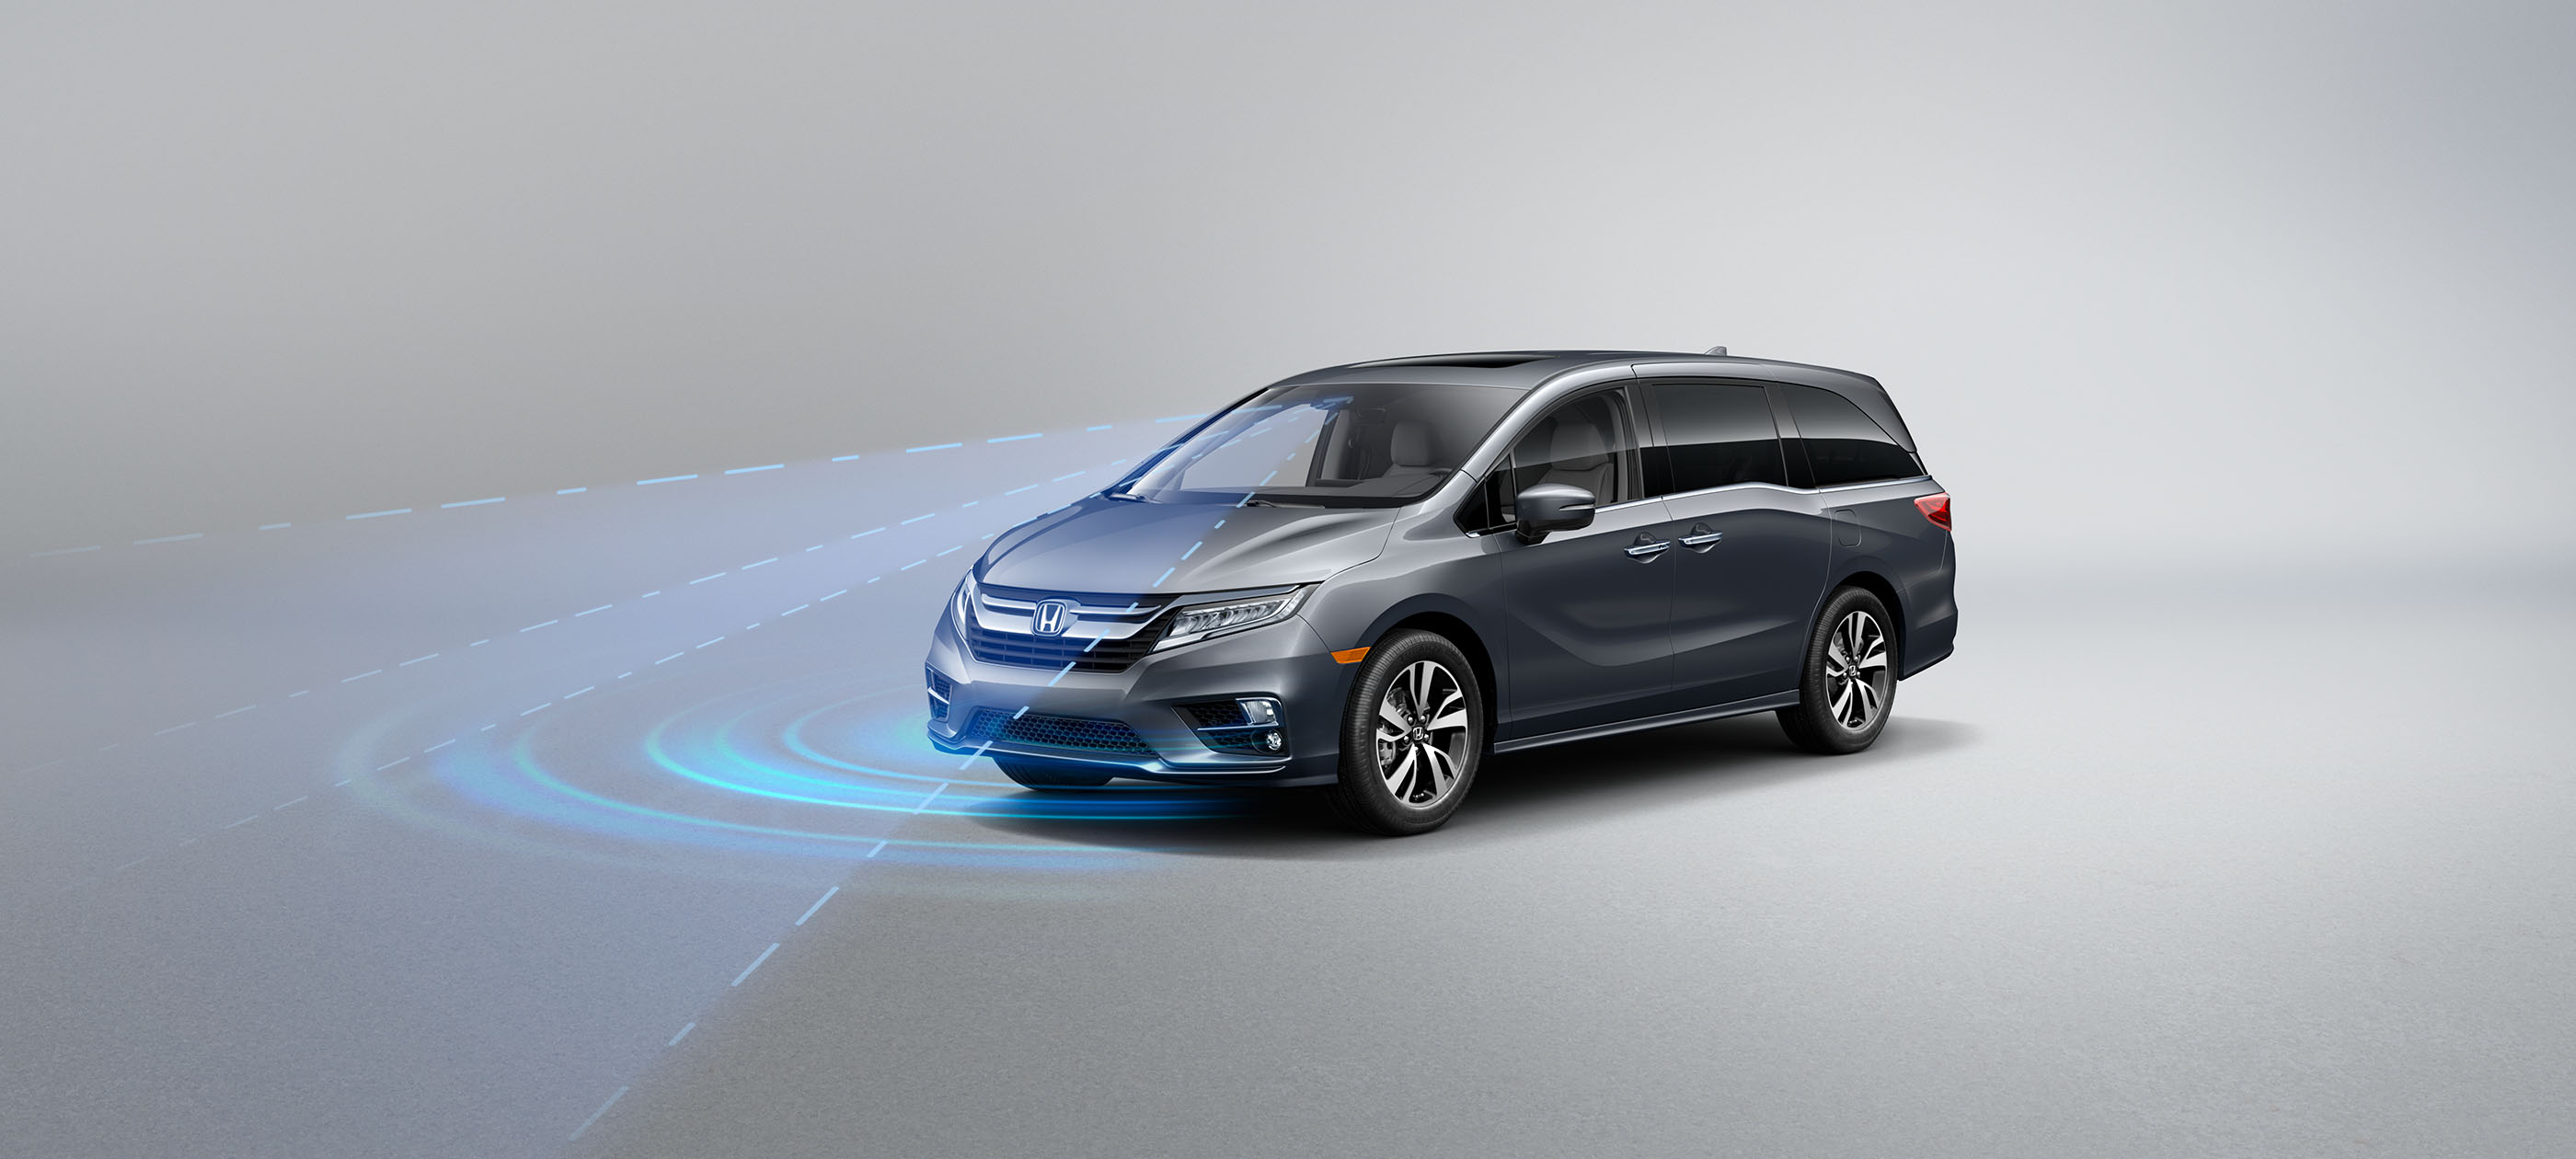 Front driver-side view of the 2020 Honda Odyssey in Forest Mist Metallic, with illustrated Honda Sensing® graphics demonstrating Road Departure Mitigation System.